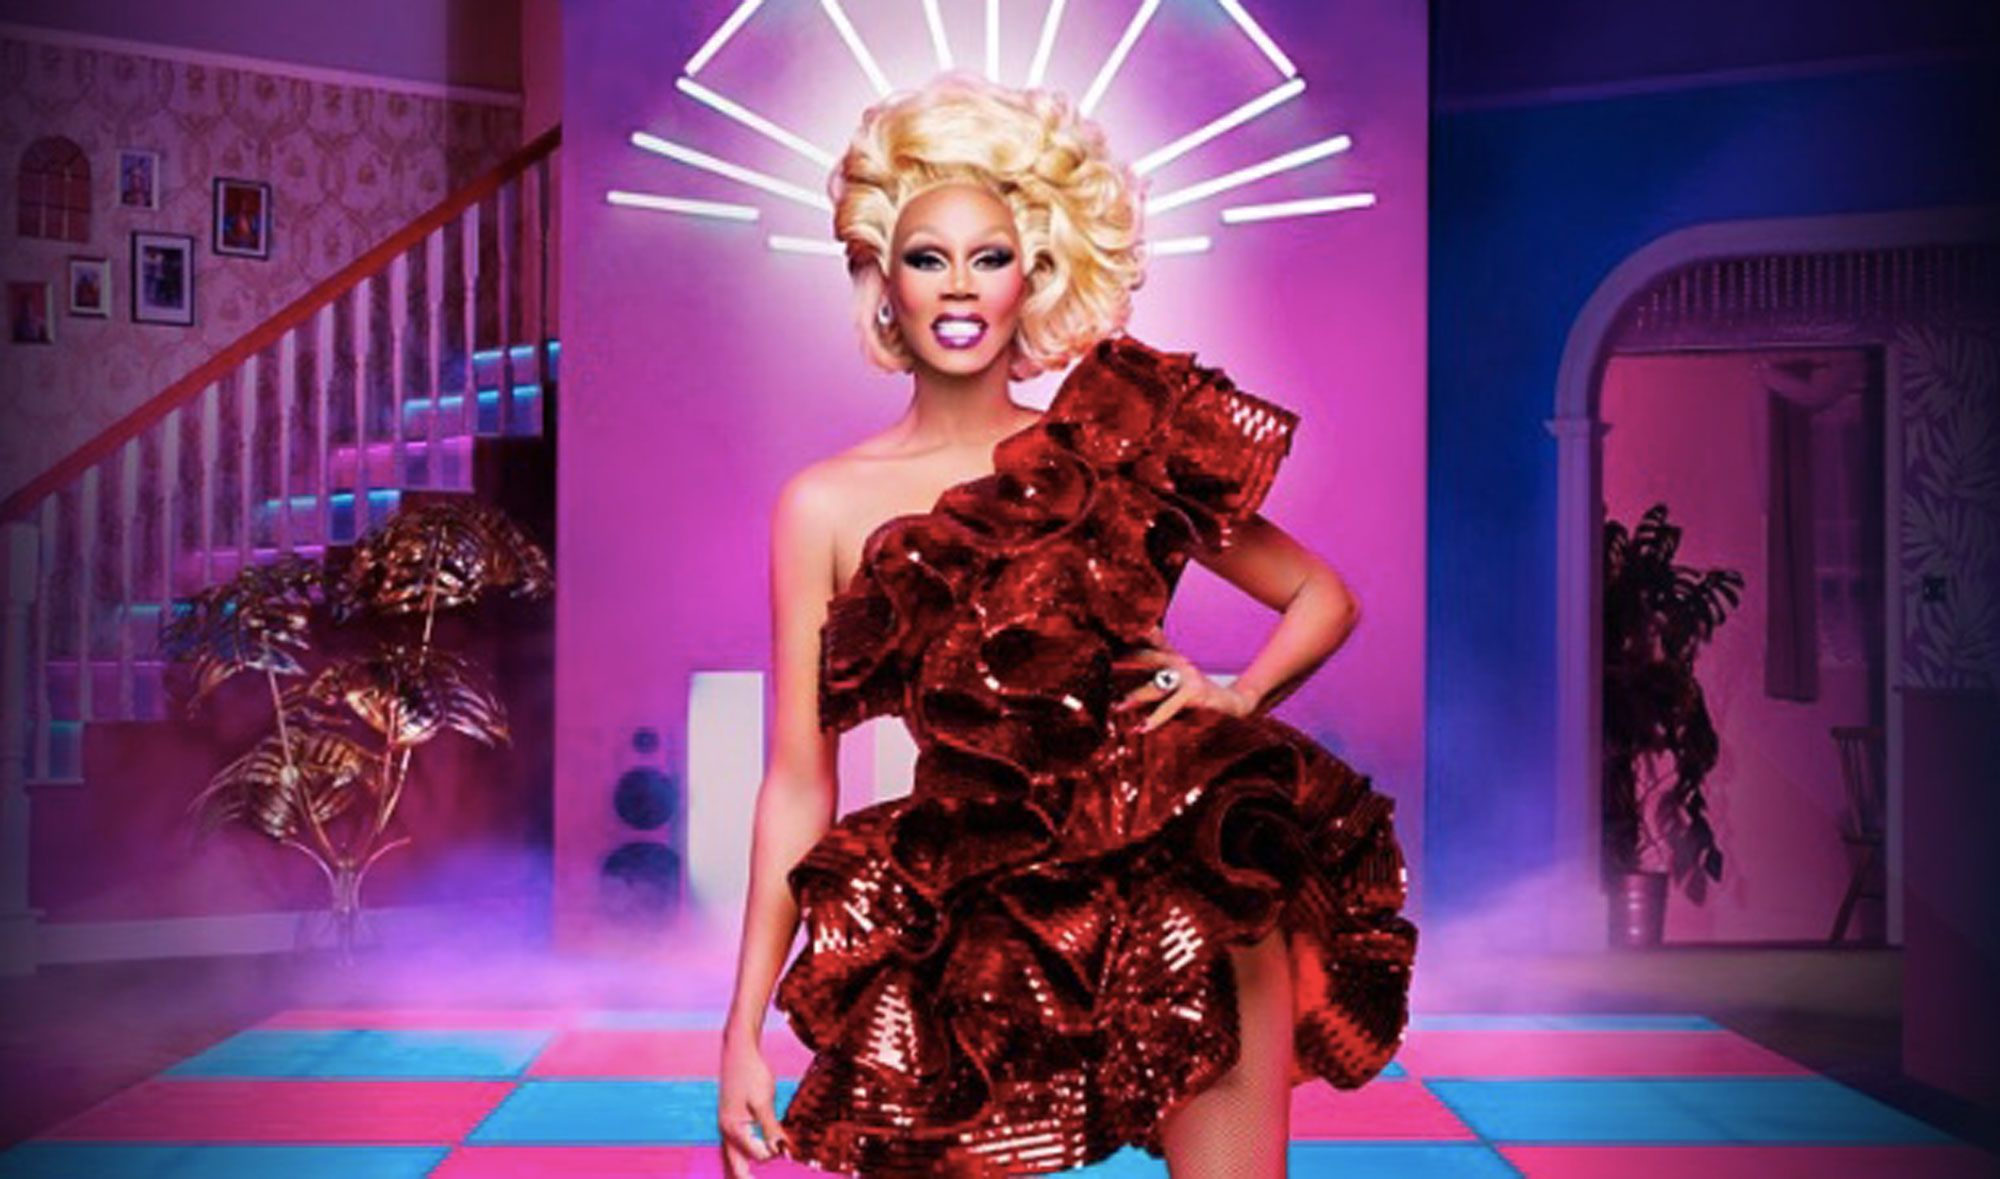 RuPaul's DragCon is coming to the UK with Michelle Visage, Bianca Del Rio and many more